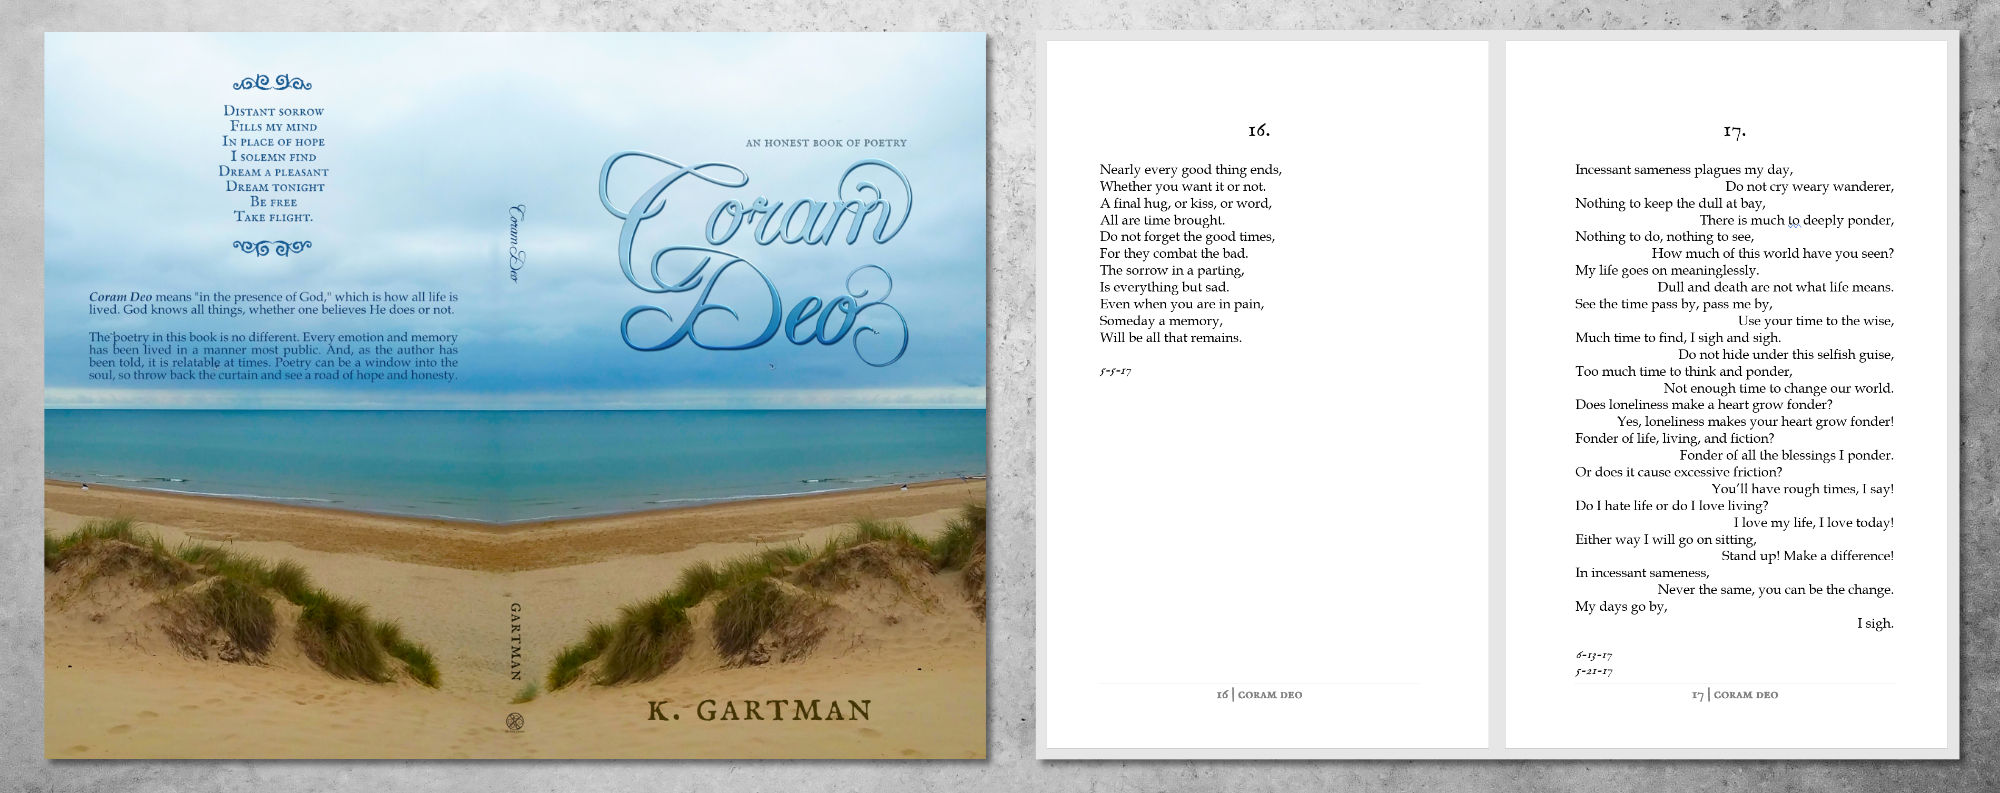 Book cover design and interior example page image for Coram Deo by K. Gartman